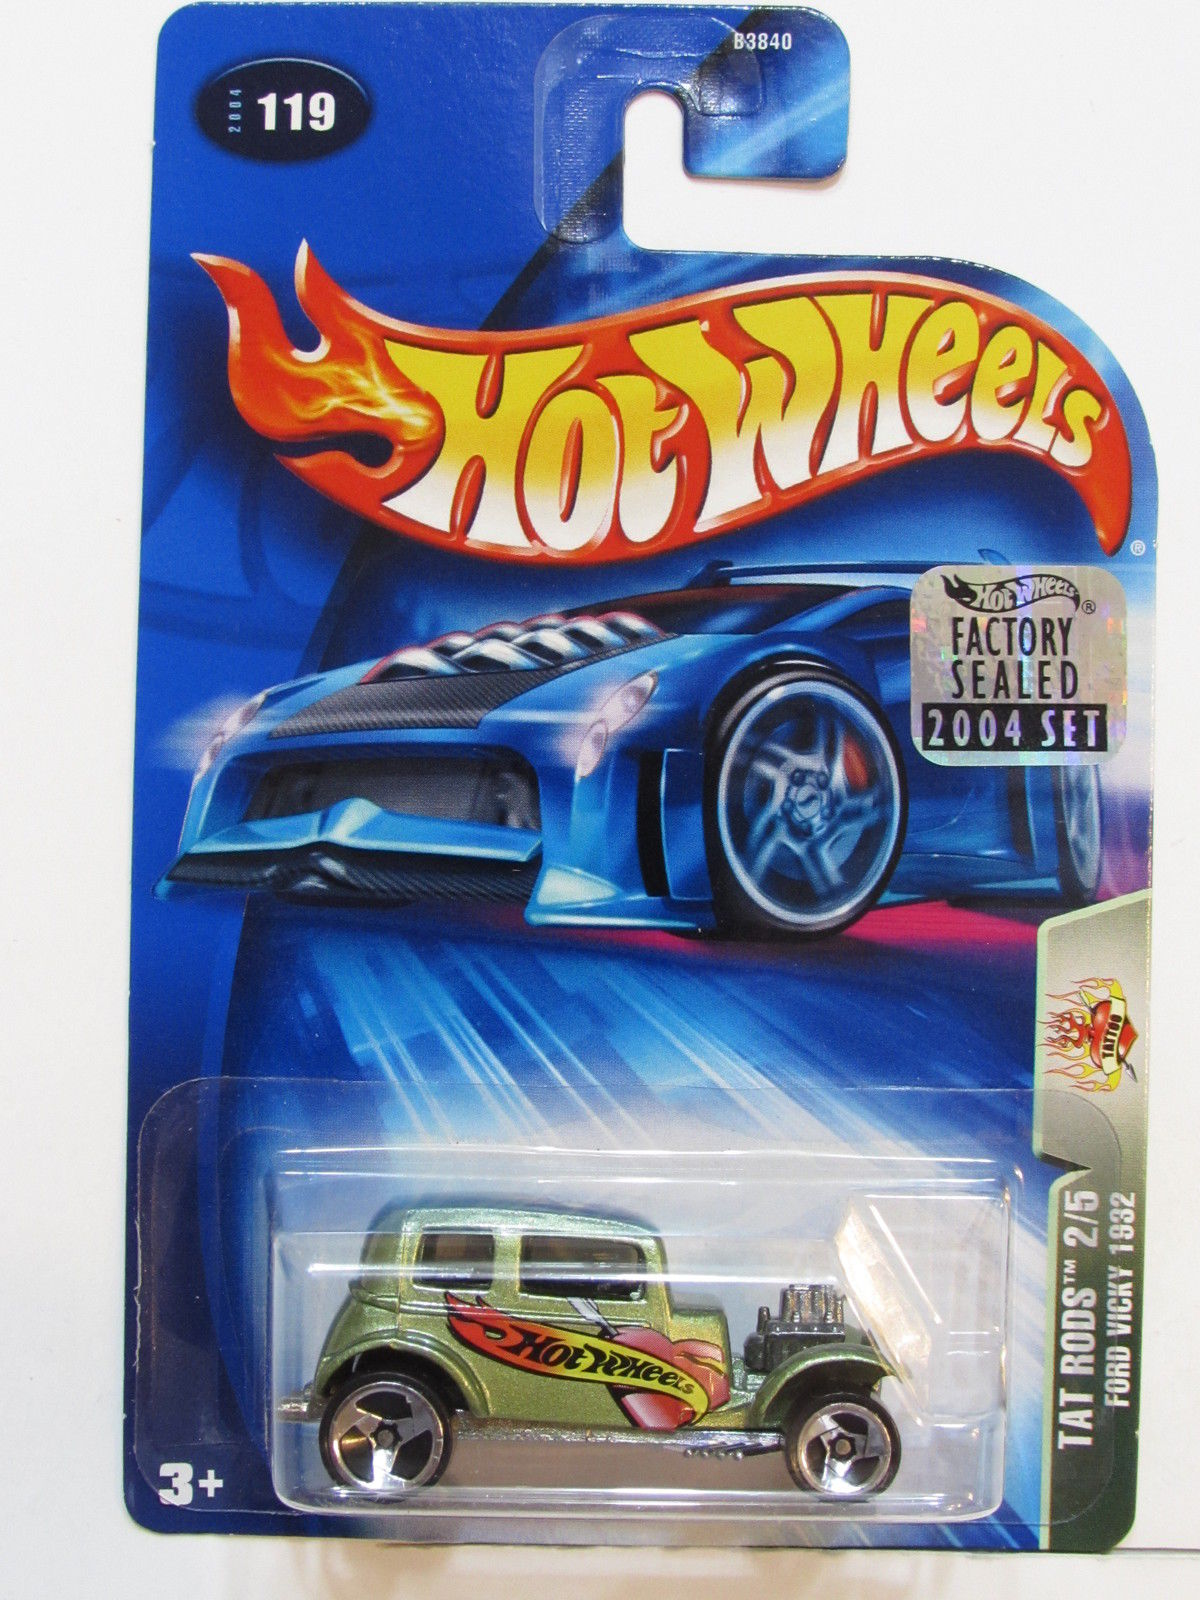 HOT WHEELS 2004 TAT RODS FORD VICKY 1932 #119 FACTORY SEALED